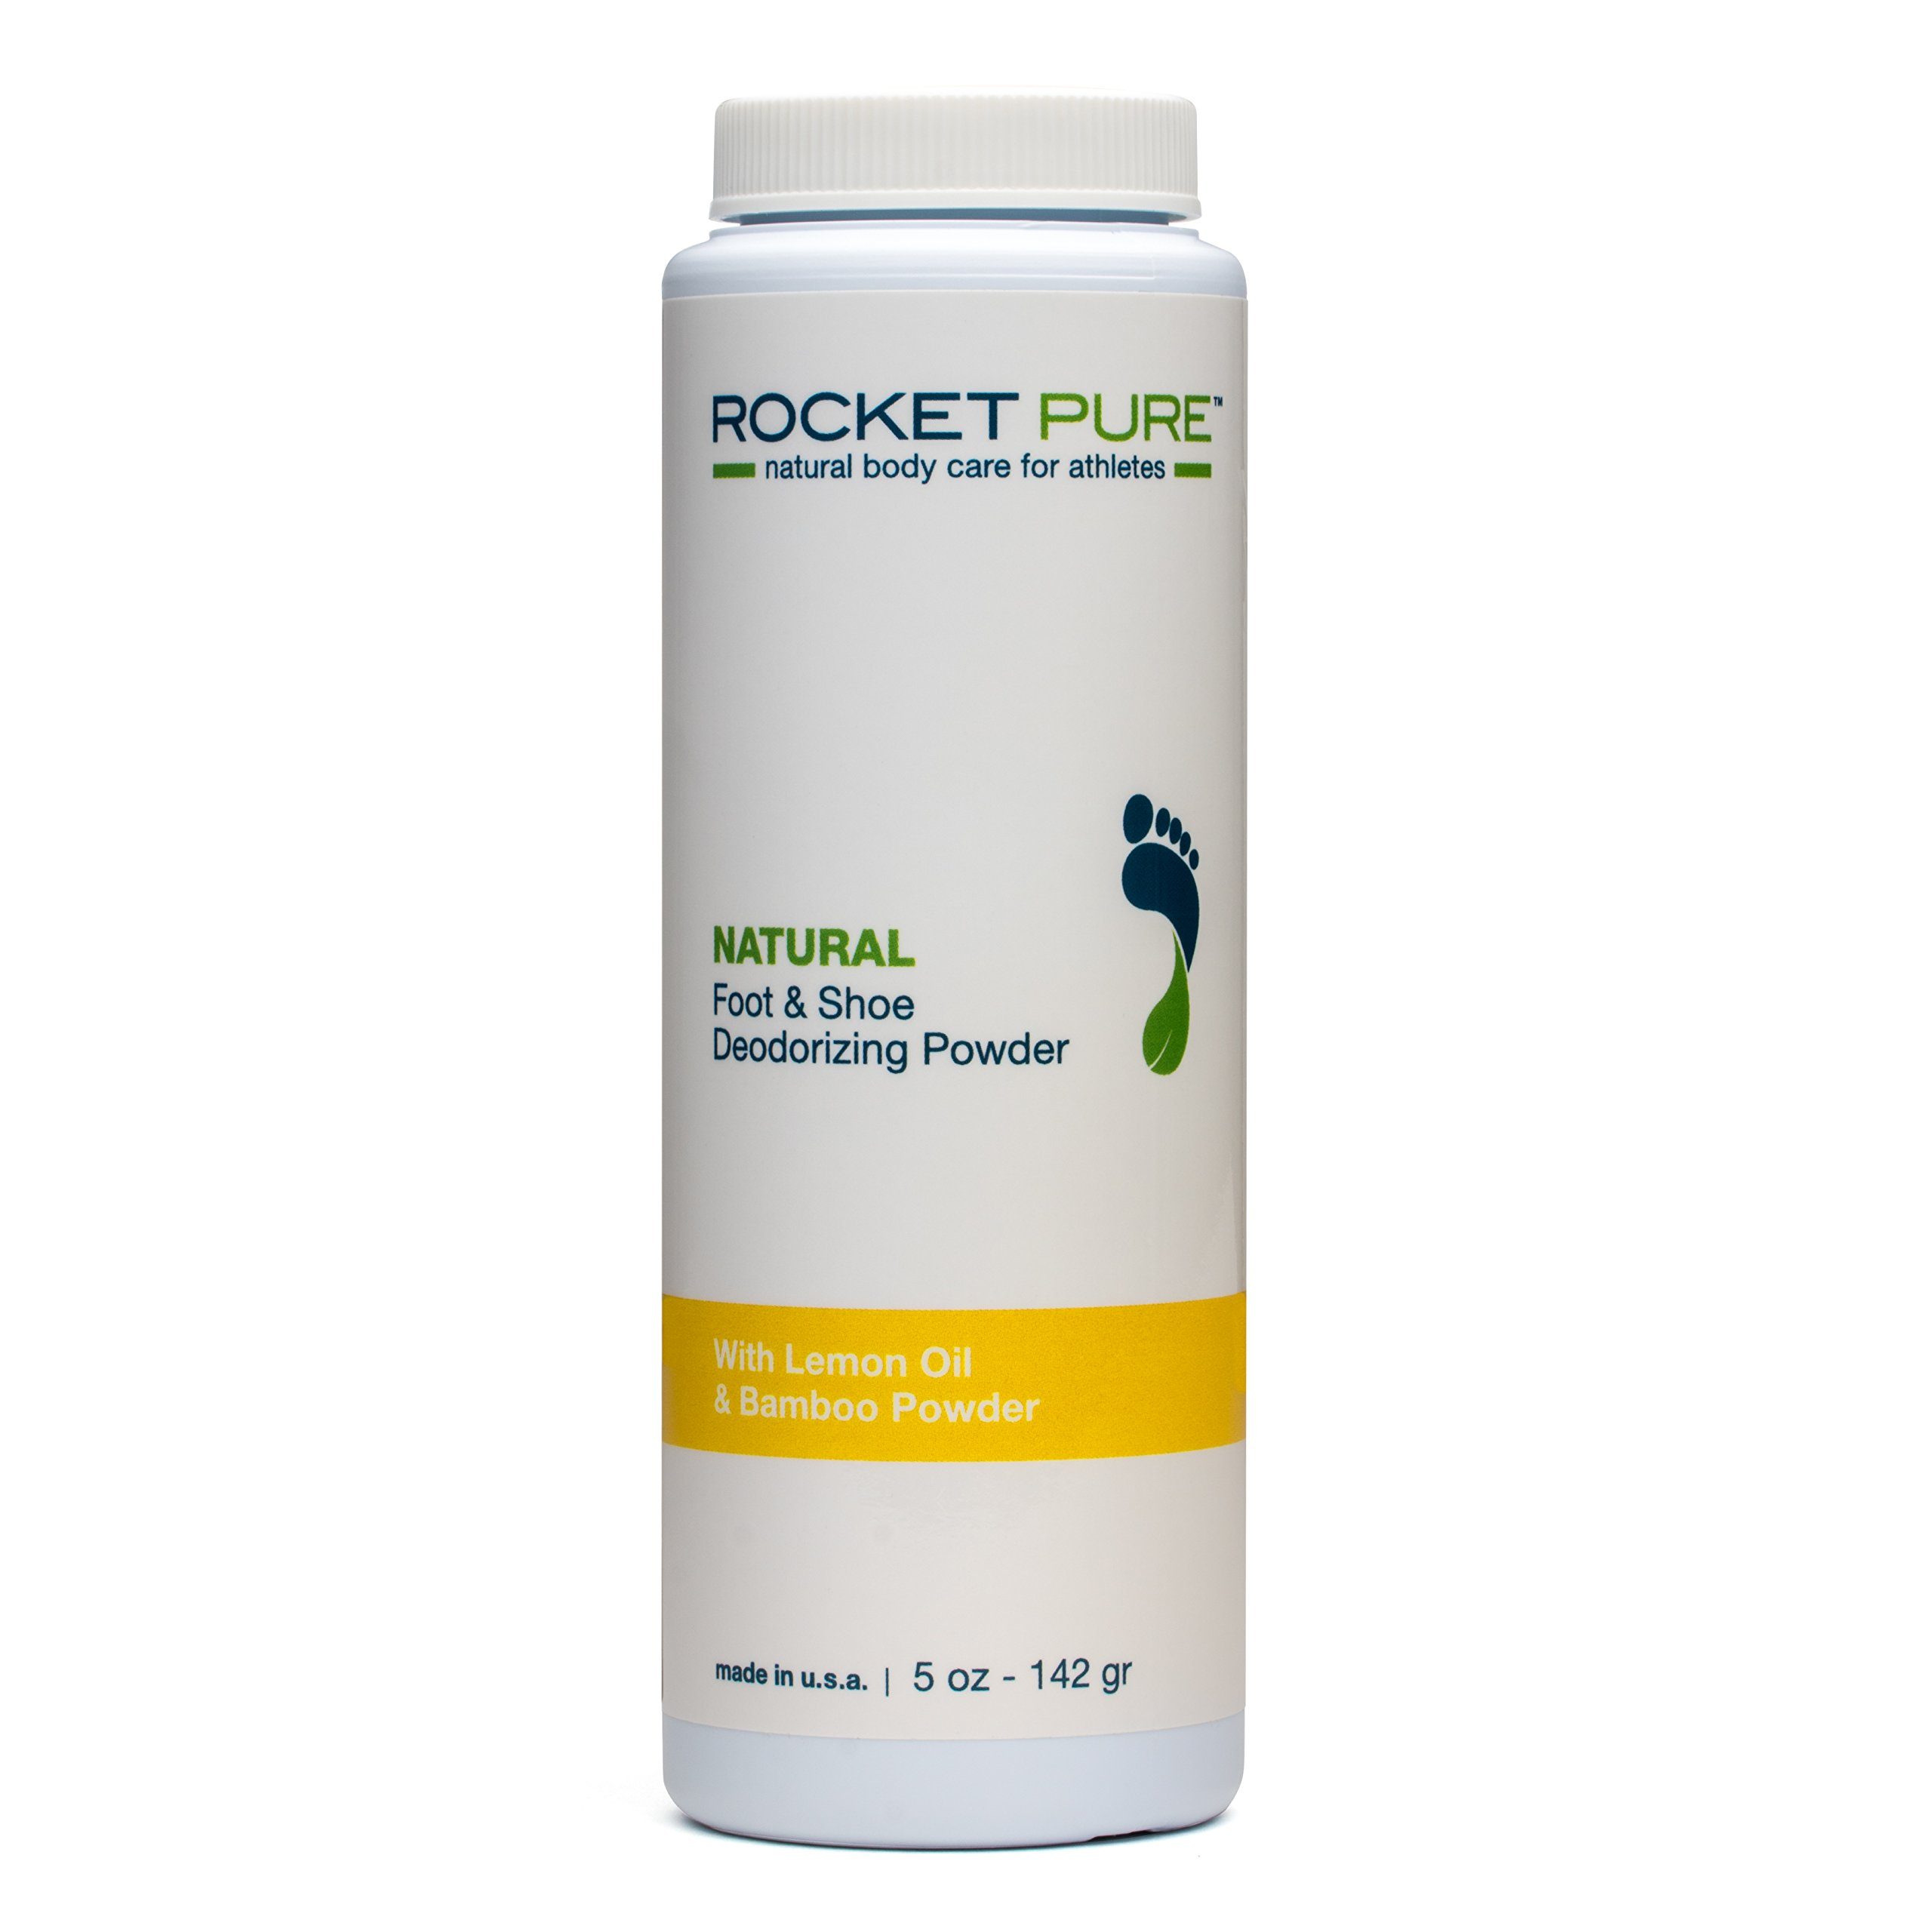 All Natural Lemon Foot & Shoe Deodorizing Powder for Athletes. Removes Odor, Stink From Bacteria. Better than Antiperspirant, Insoles, Sneaker Balls. Use on Feet, Socks, Shoes (1-5 oz Bottle)